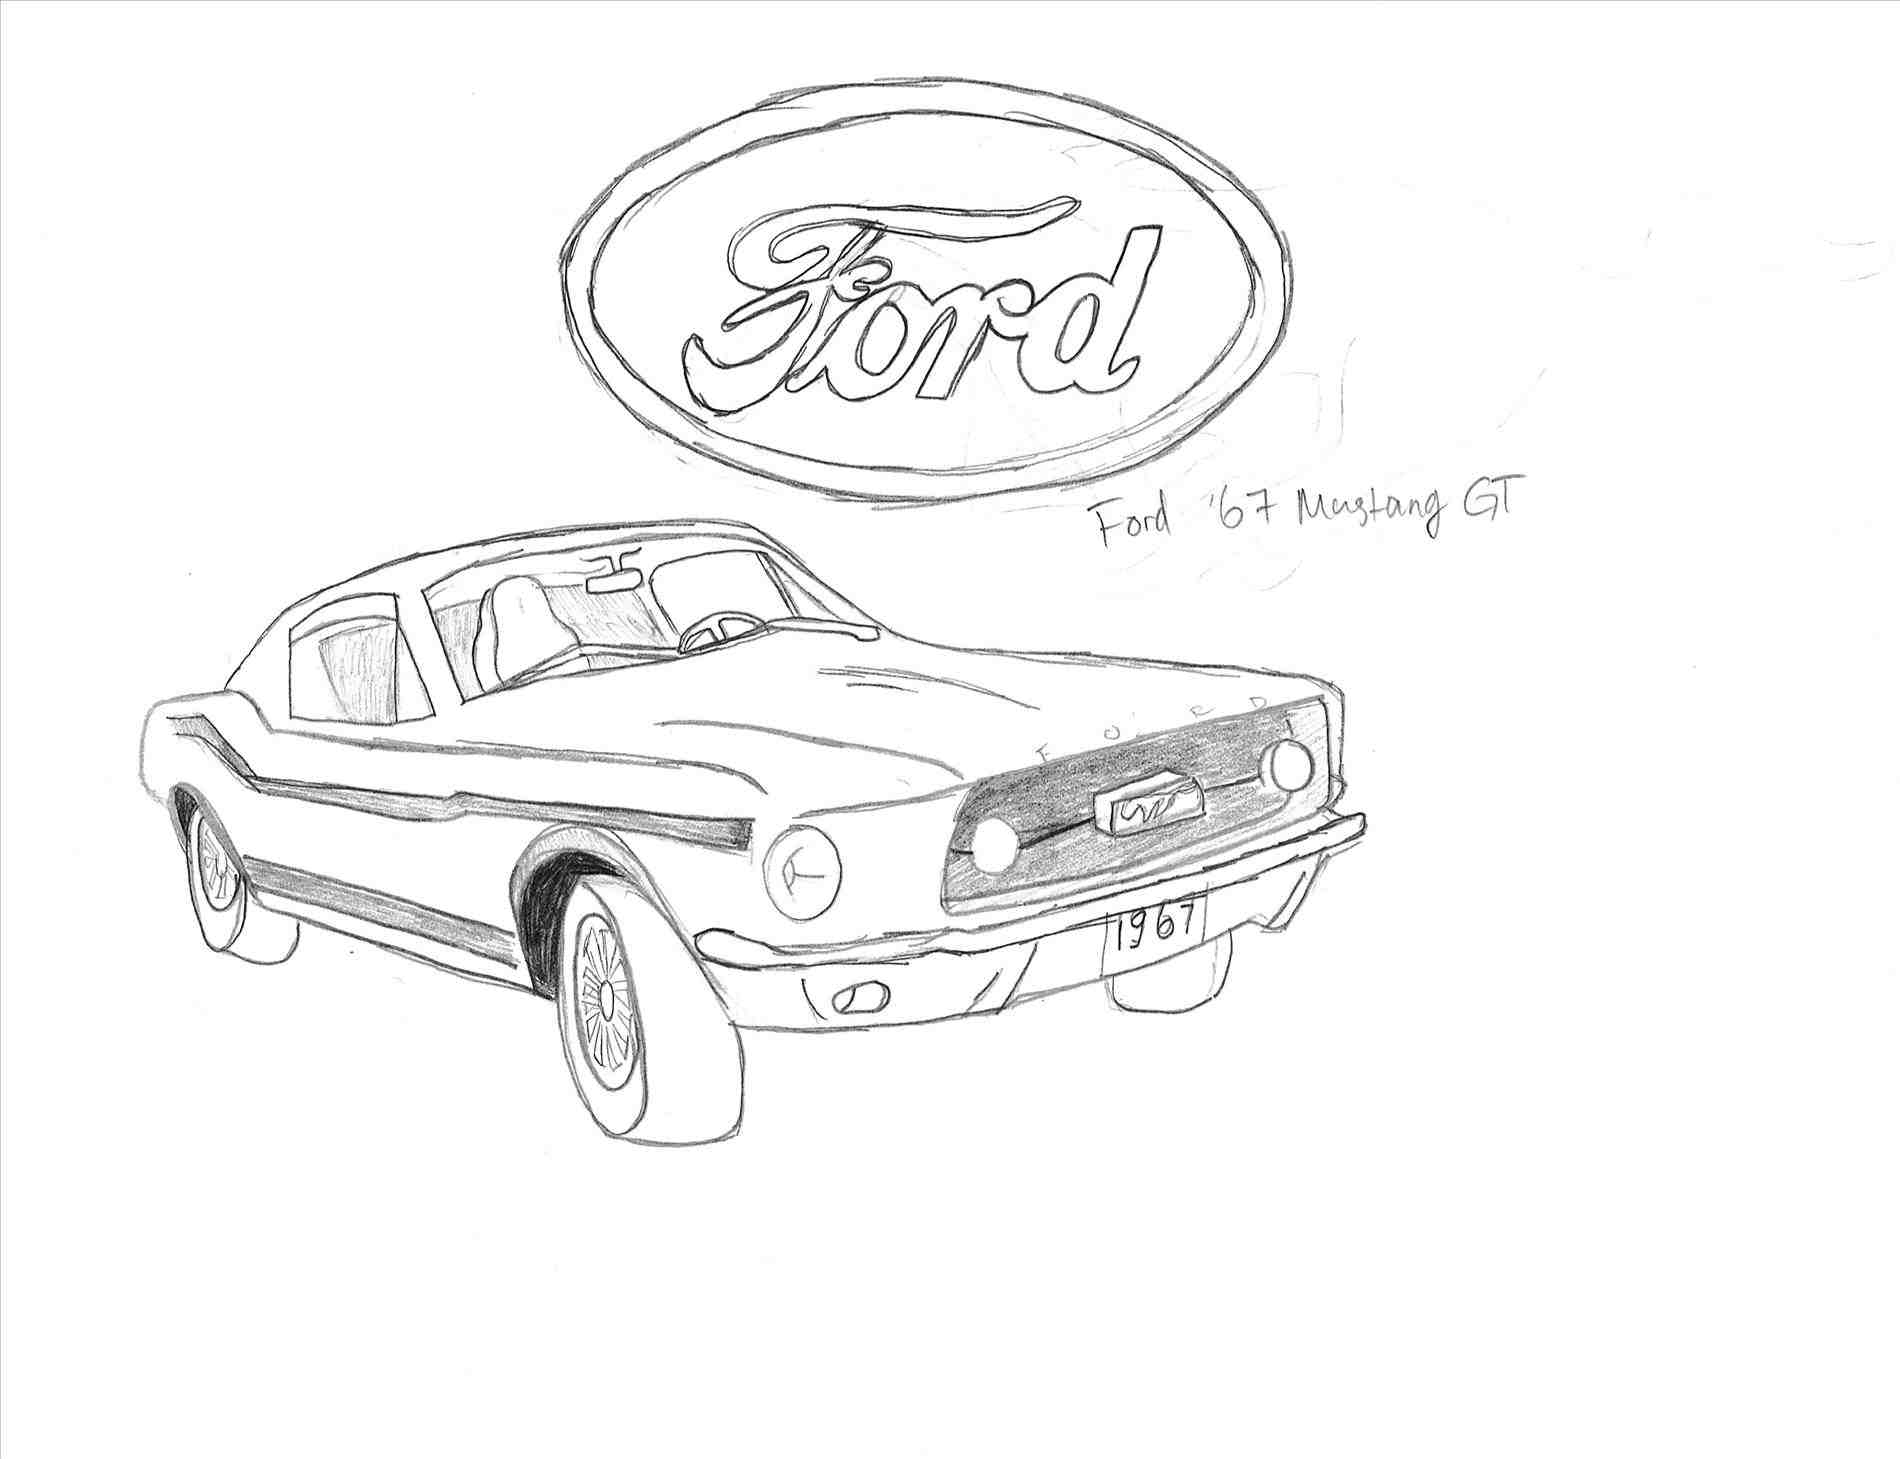 94 Ford Mustang